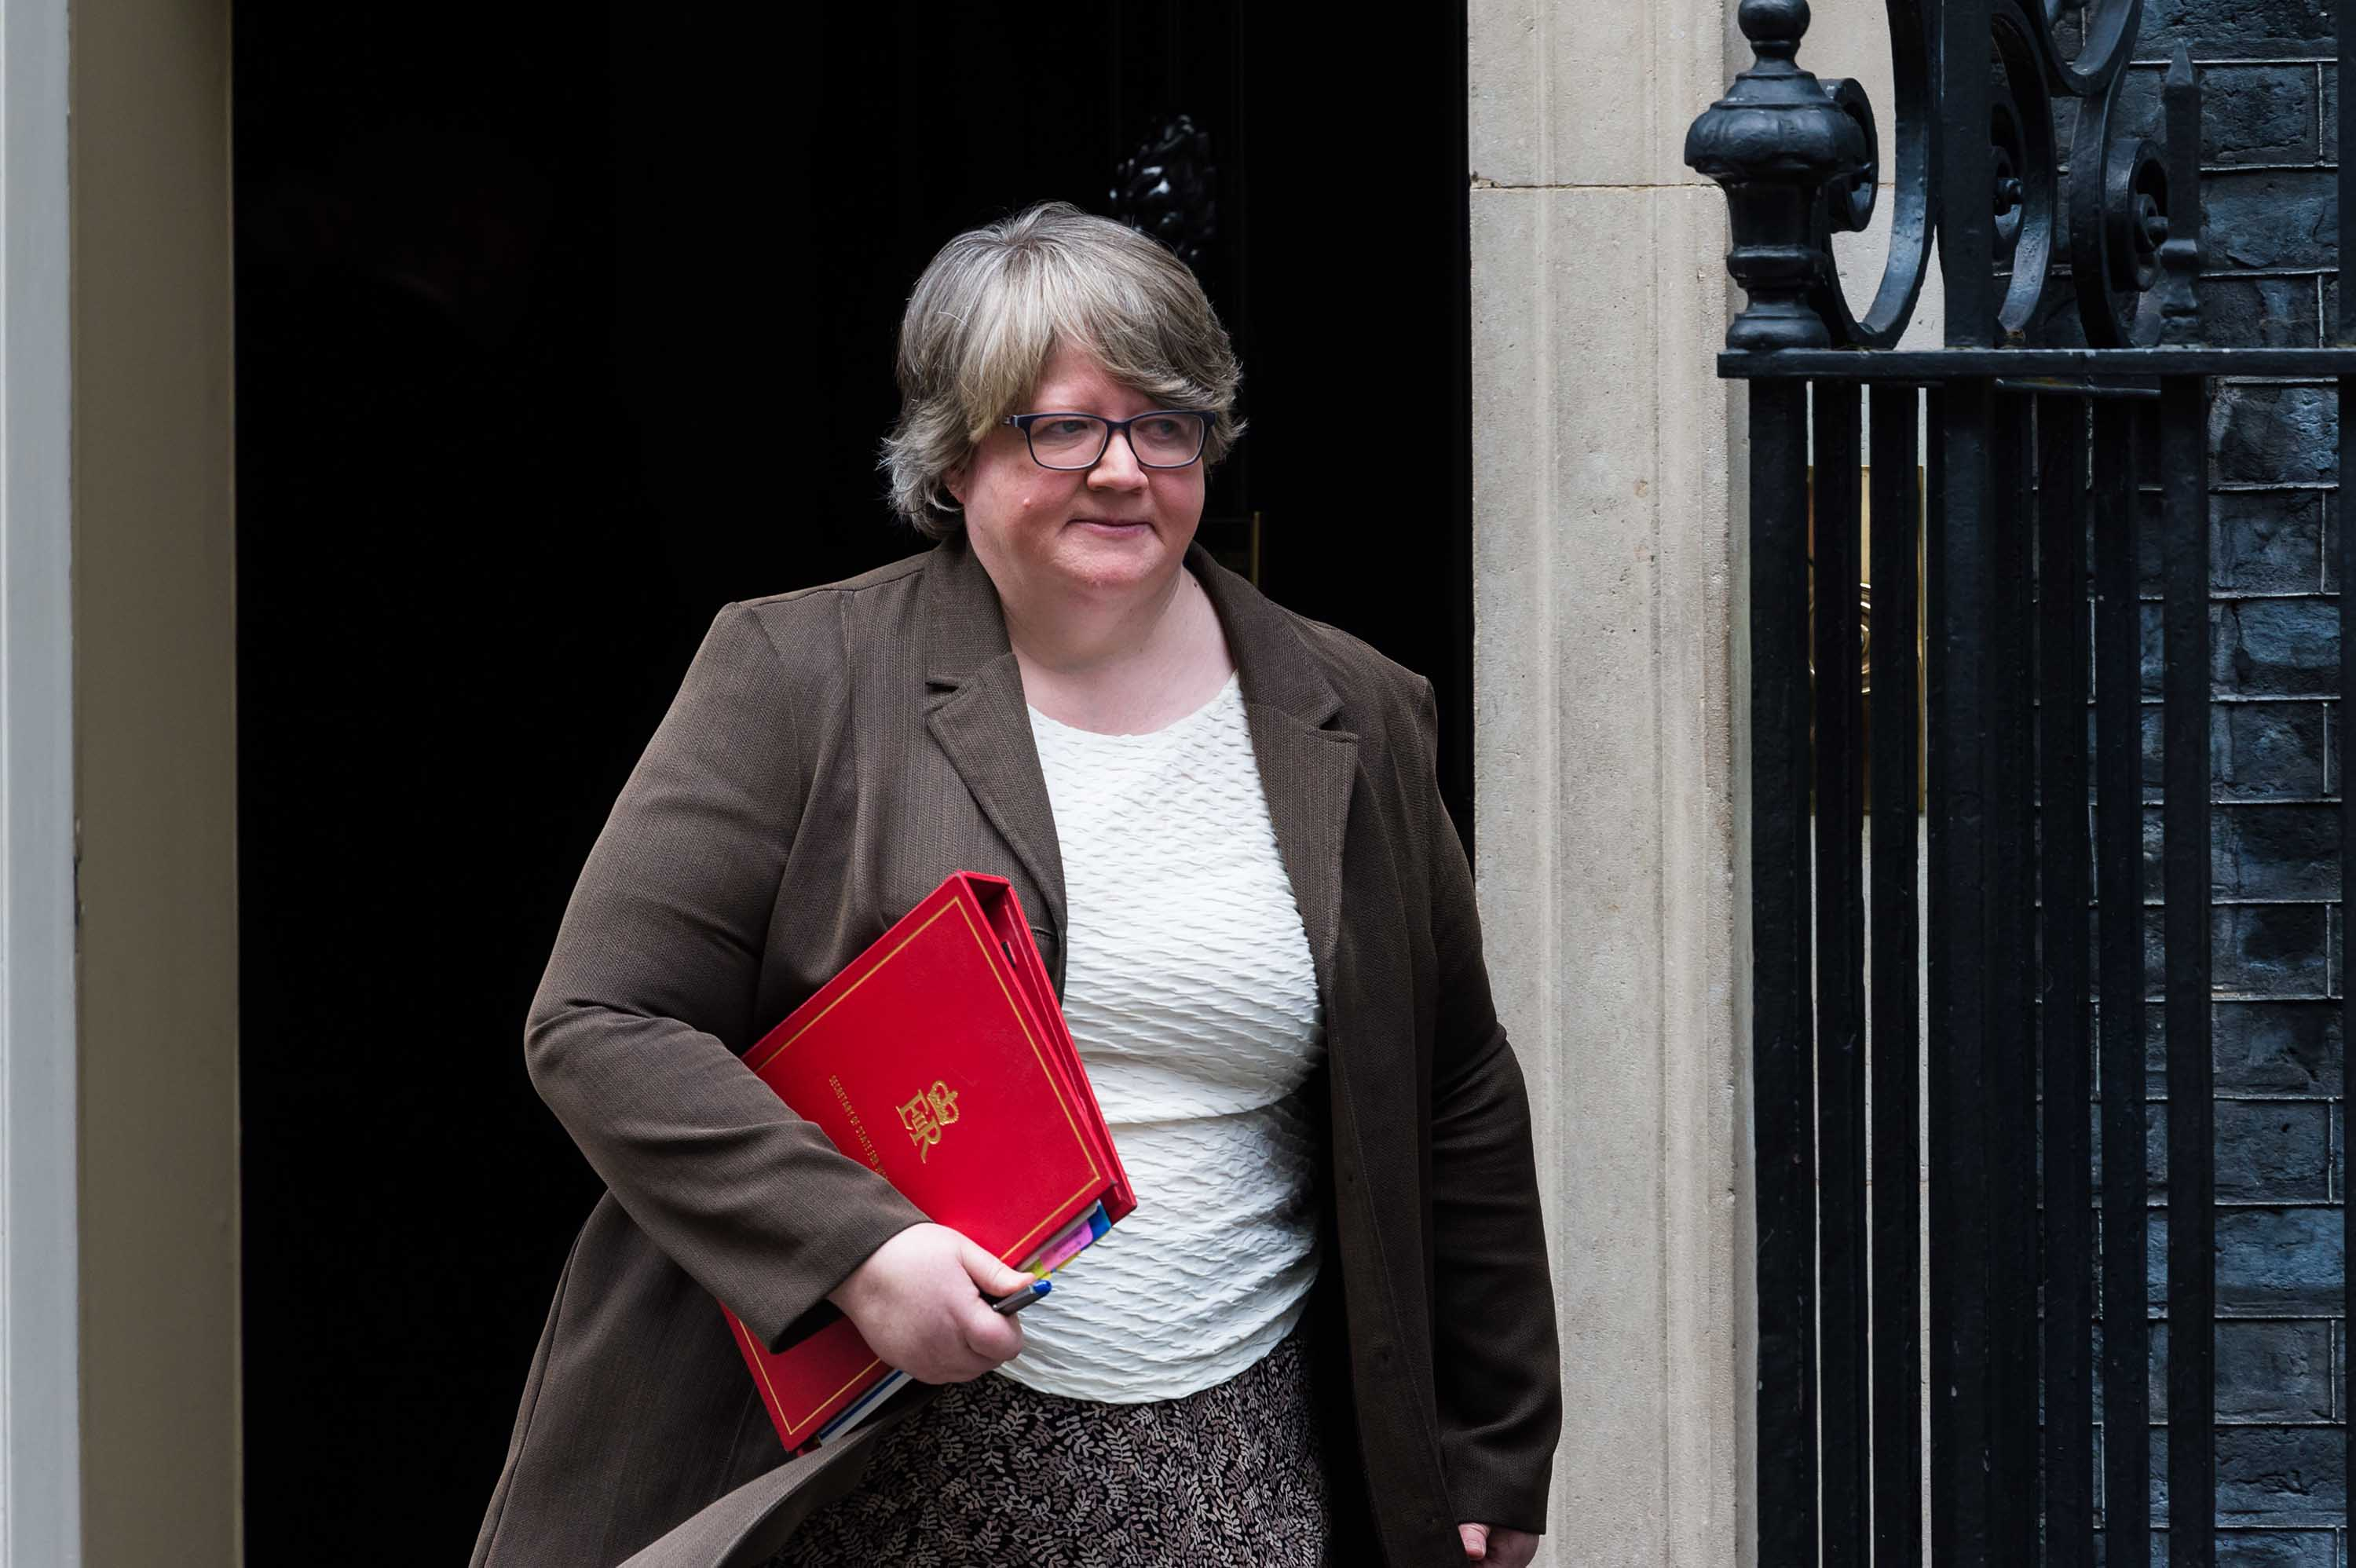 Secretary of State for Work and Pensions Therese Coffey leaves 10 Downing Street in London following a Cabinet meeting on March 17.